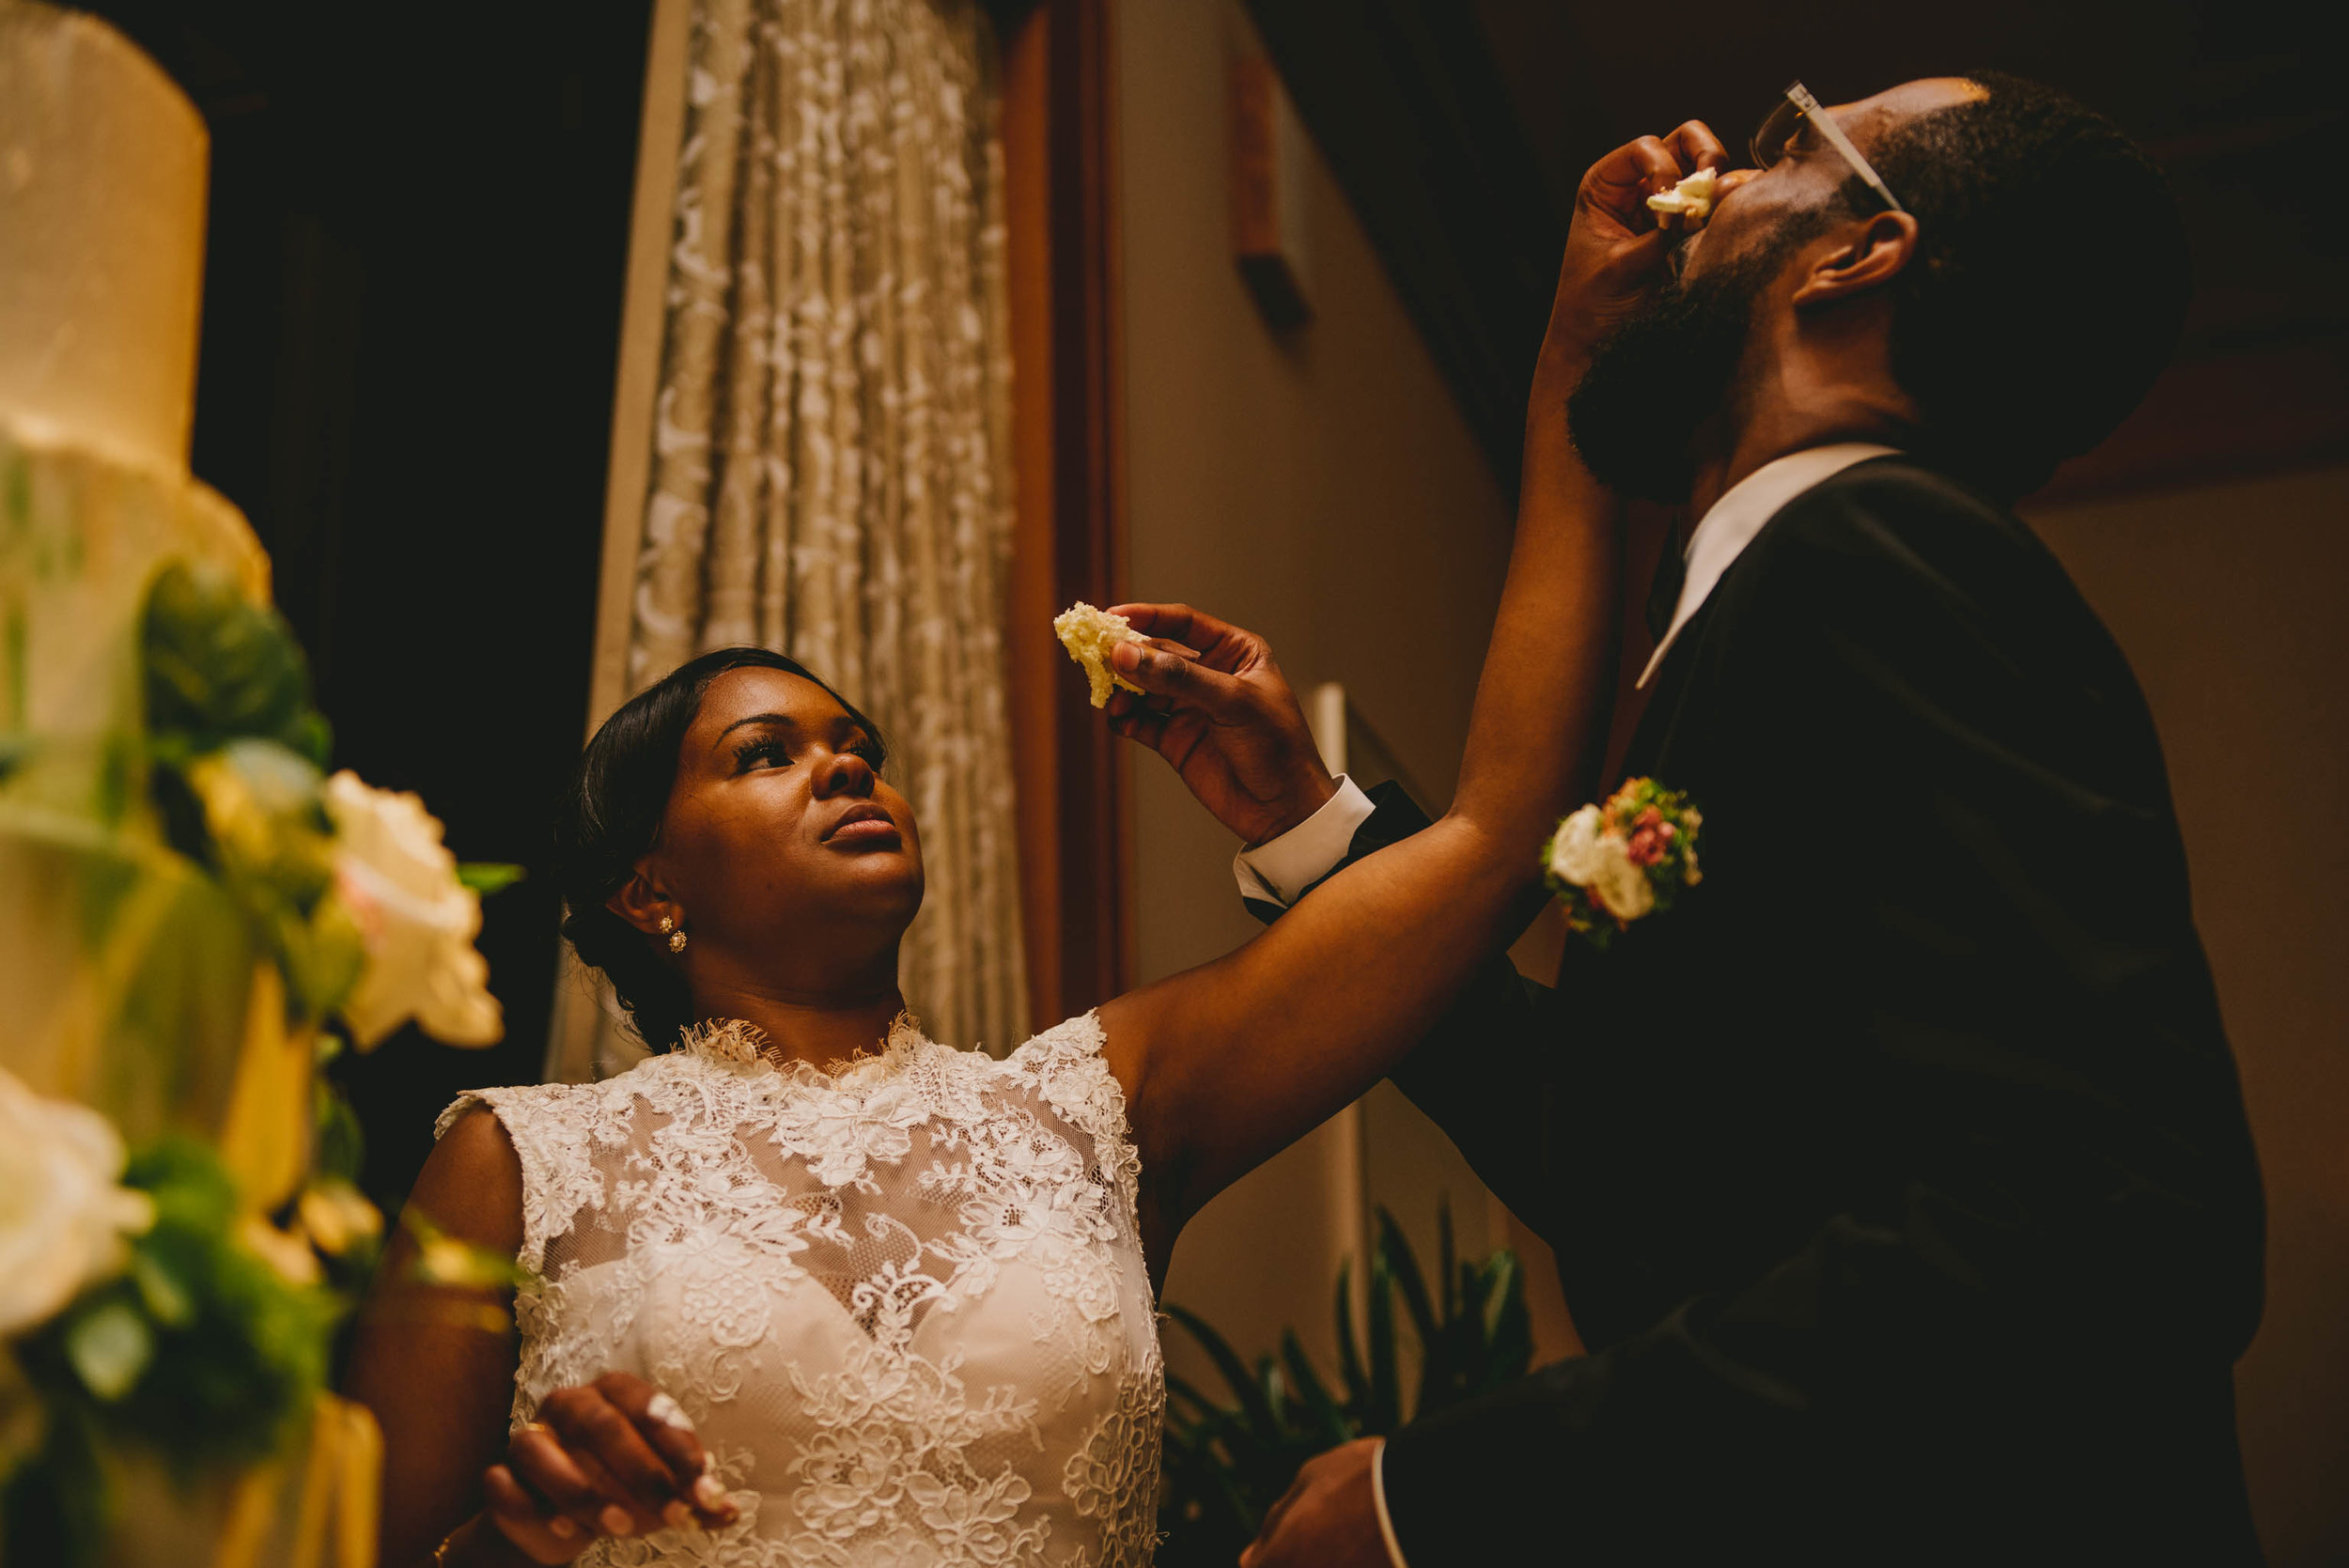 The bride smashes a piece of cake in the grooms face at the Raleigh, NC wedding